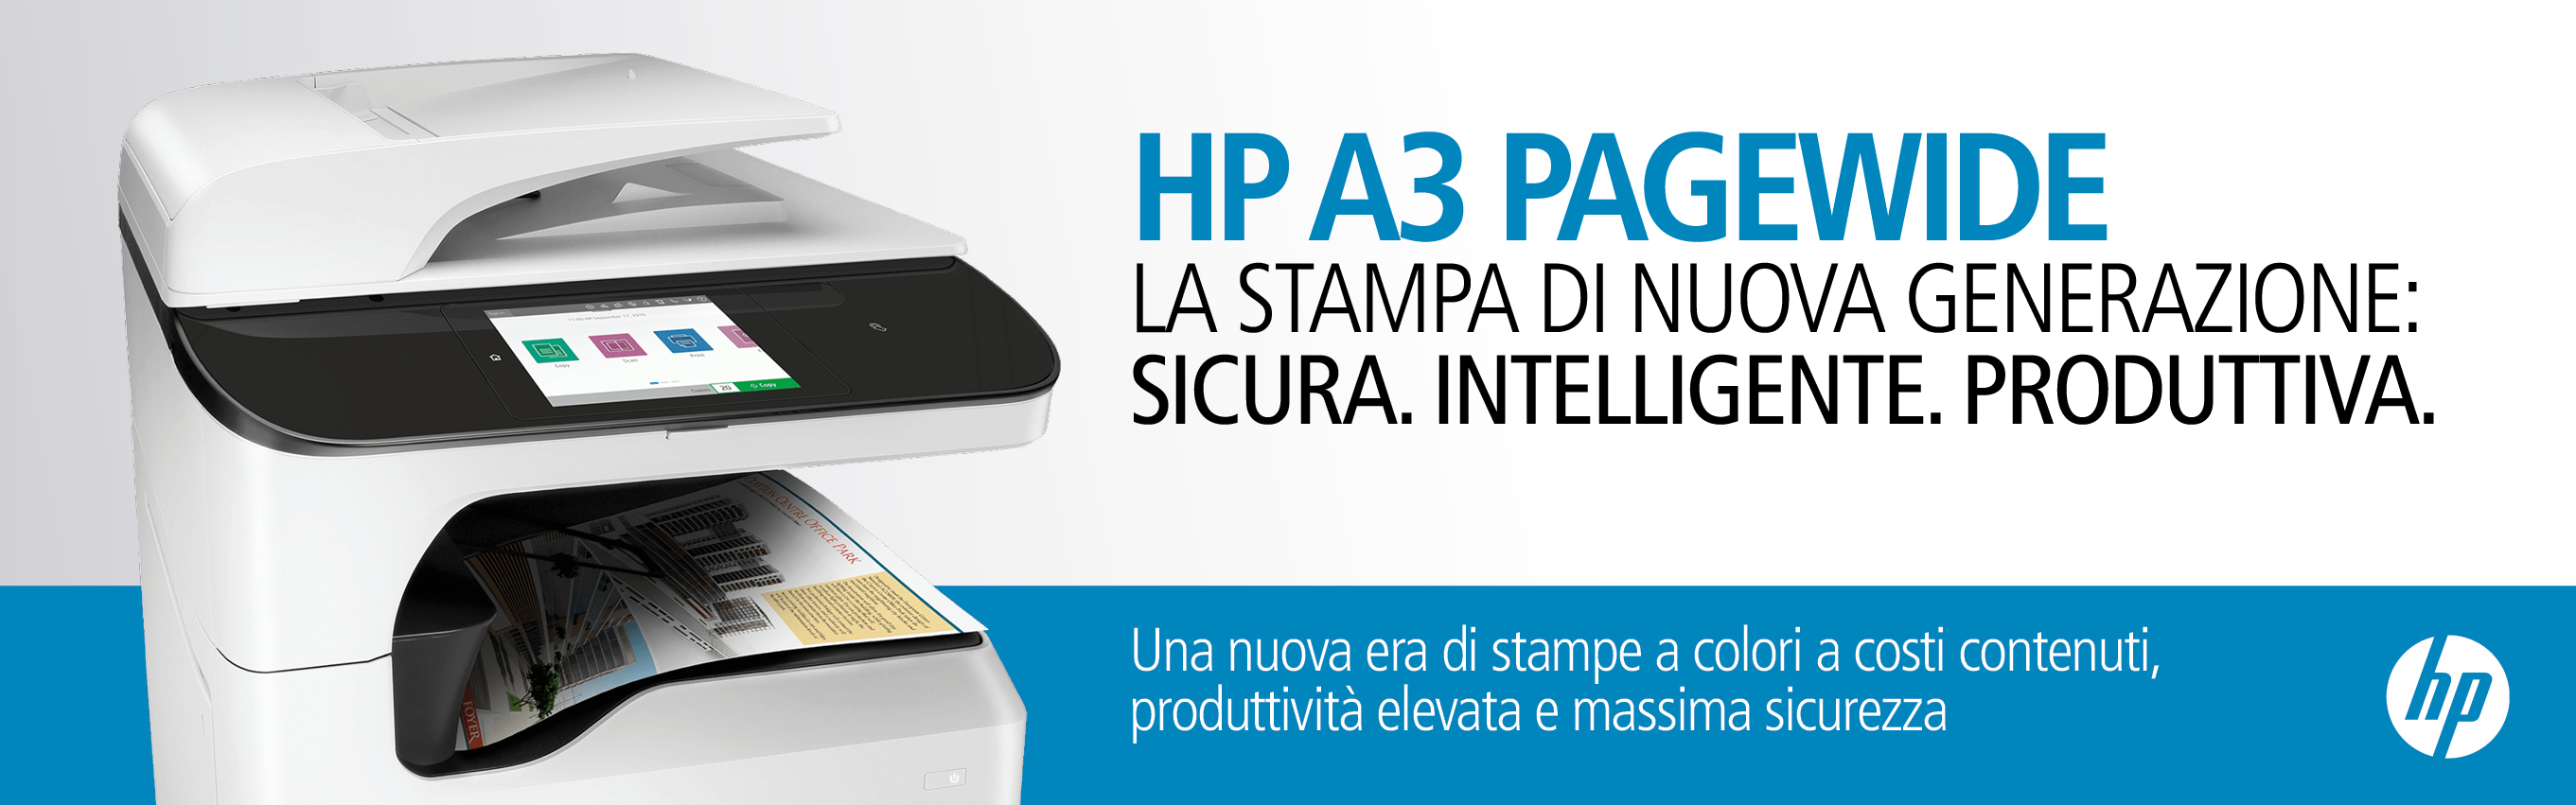 hp_pagewide_slider